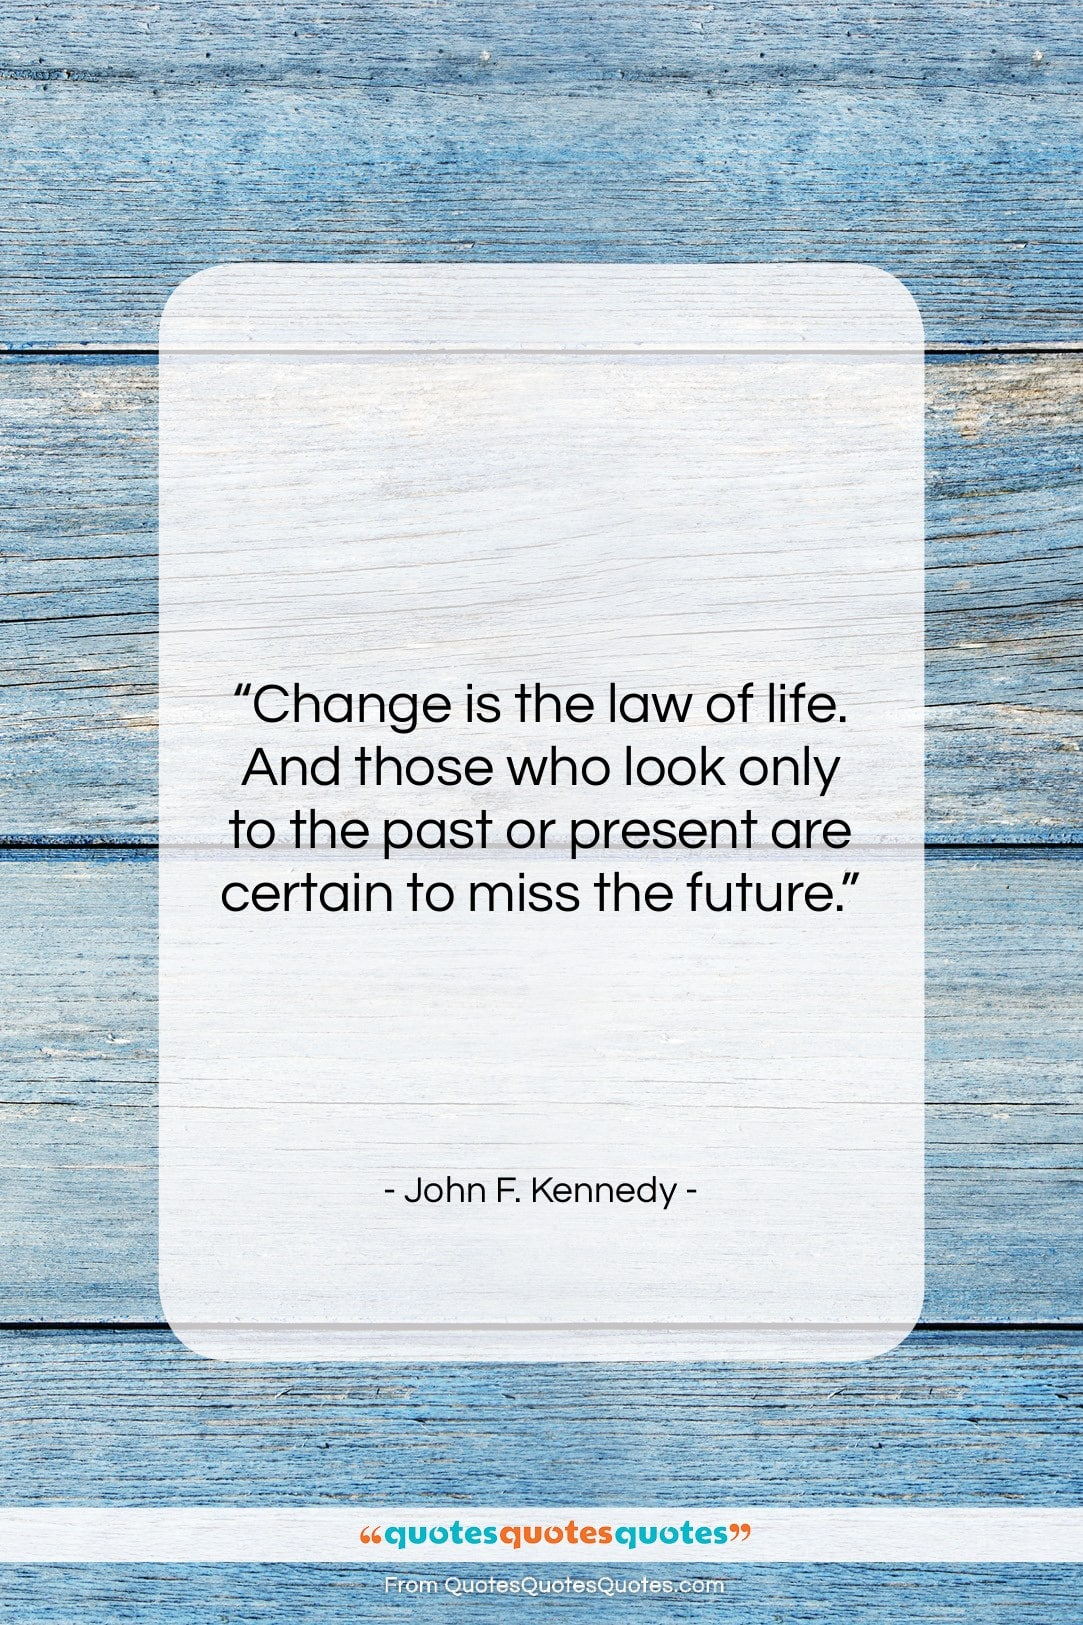 Get The Whole John F Kennedy Quote Change Is The Law Of Life And